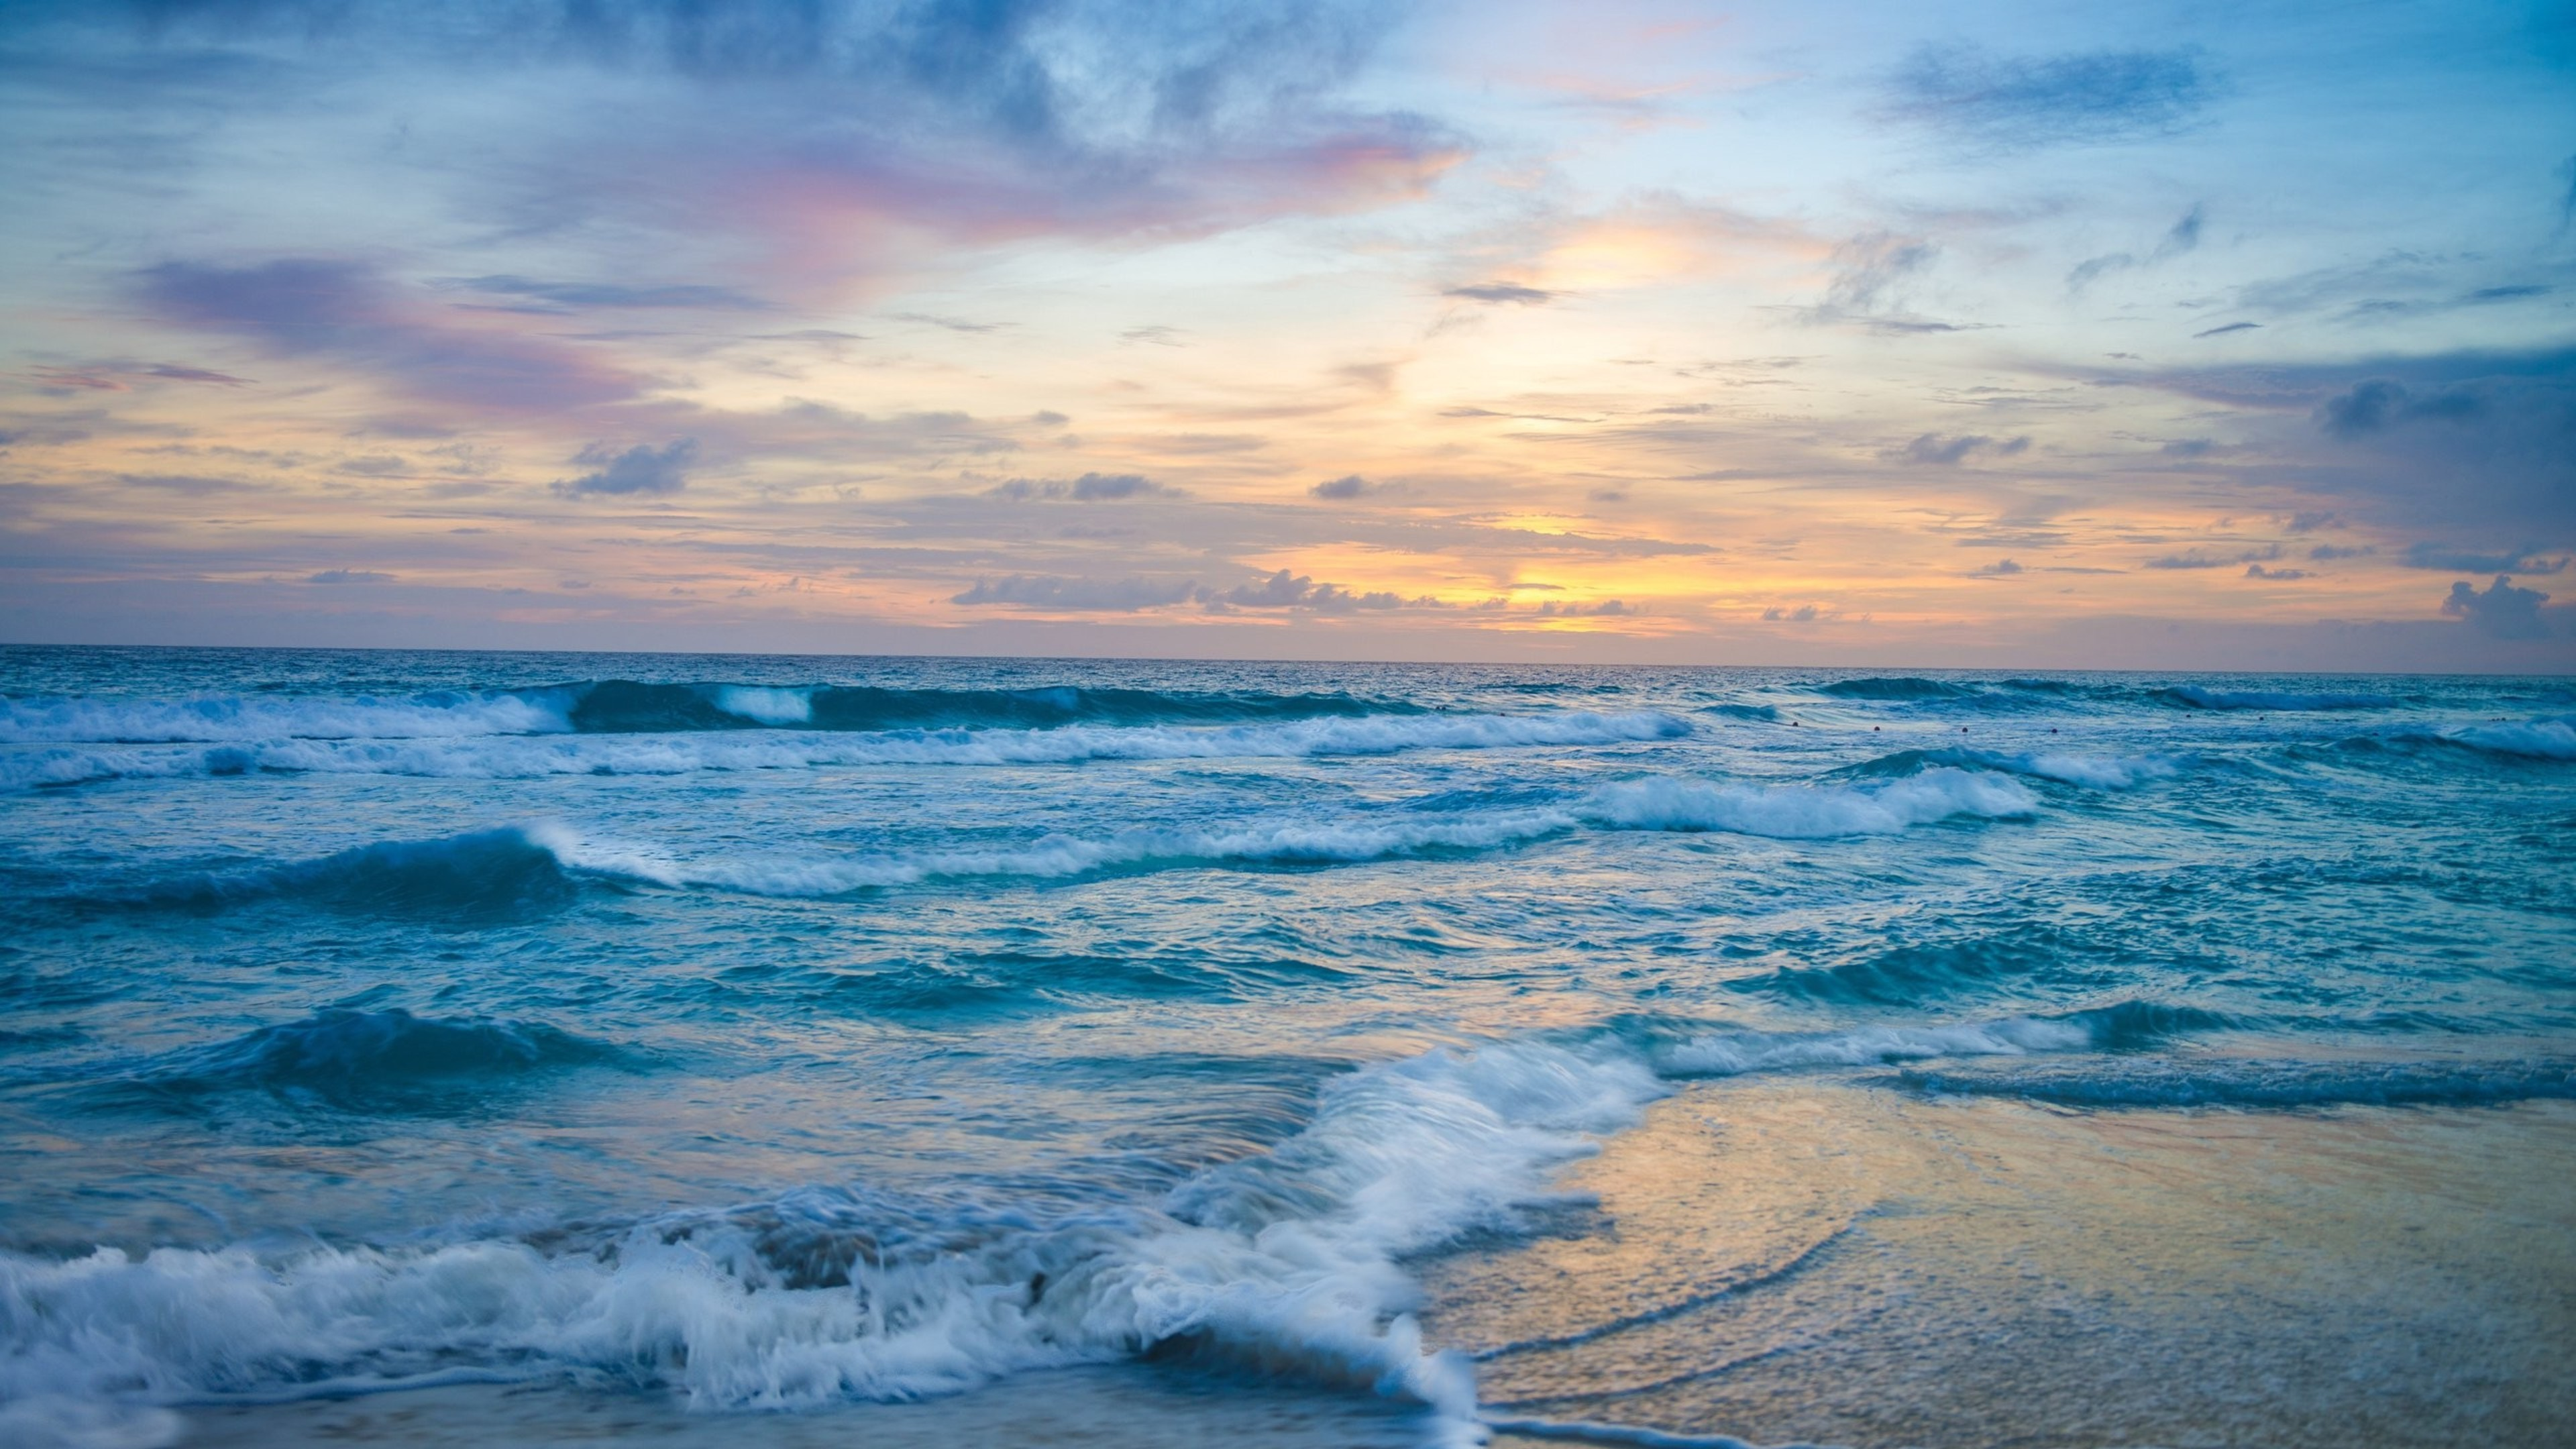 ocean waves at sunset 4k 1540131381 - Ocean Waves at Sunset  4k - waves wallpapers, sunset wallpapers, ocean wallpapers, nature wallpapers